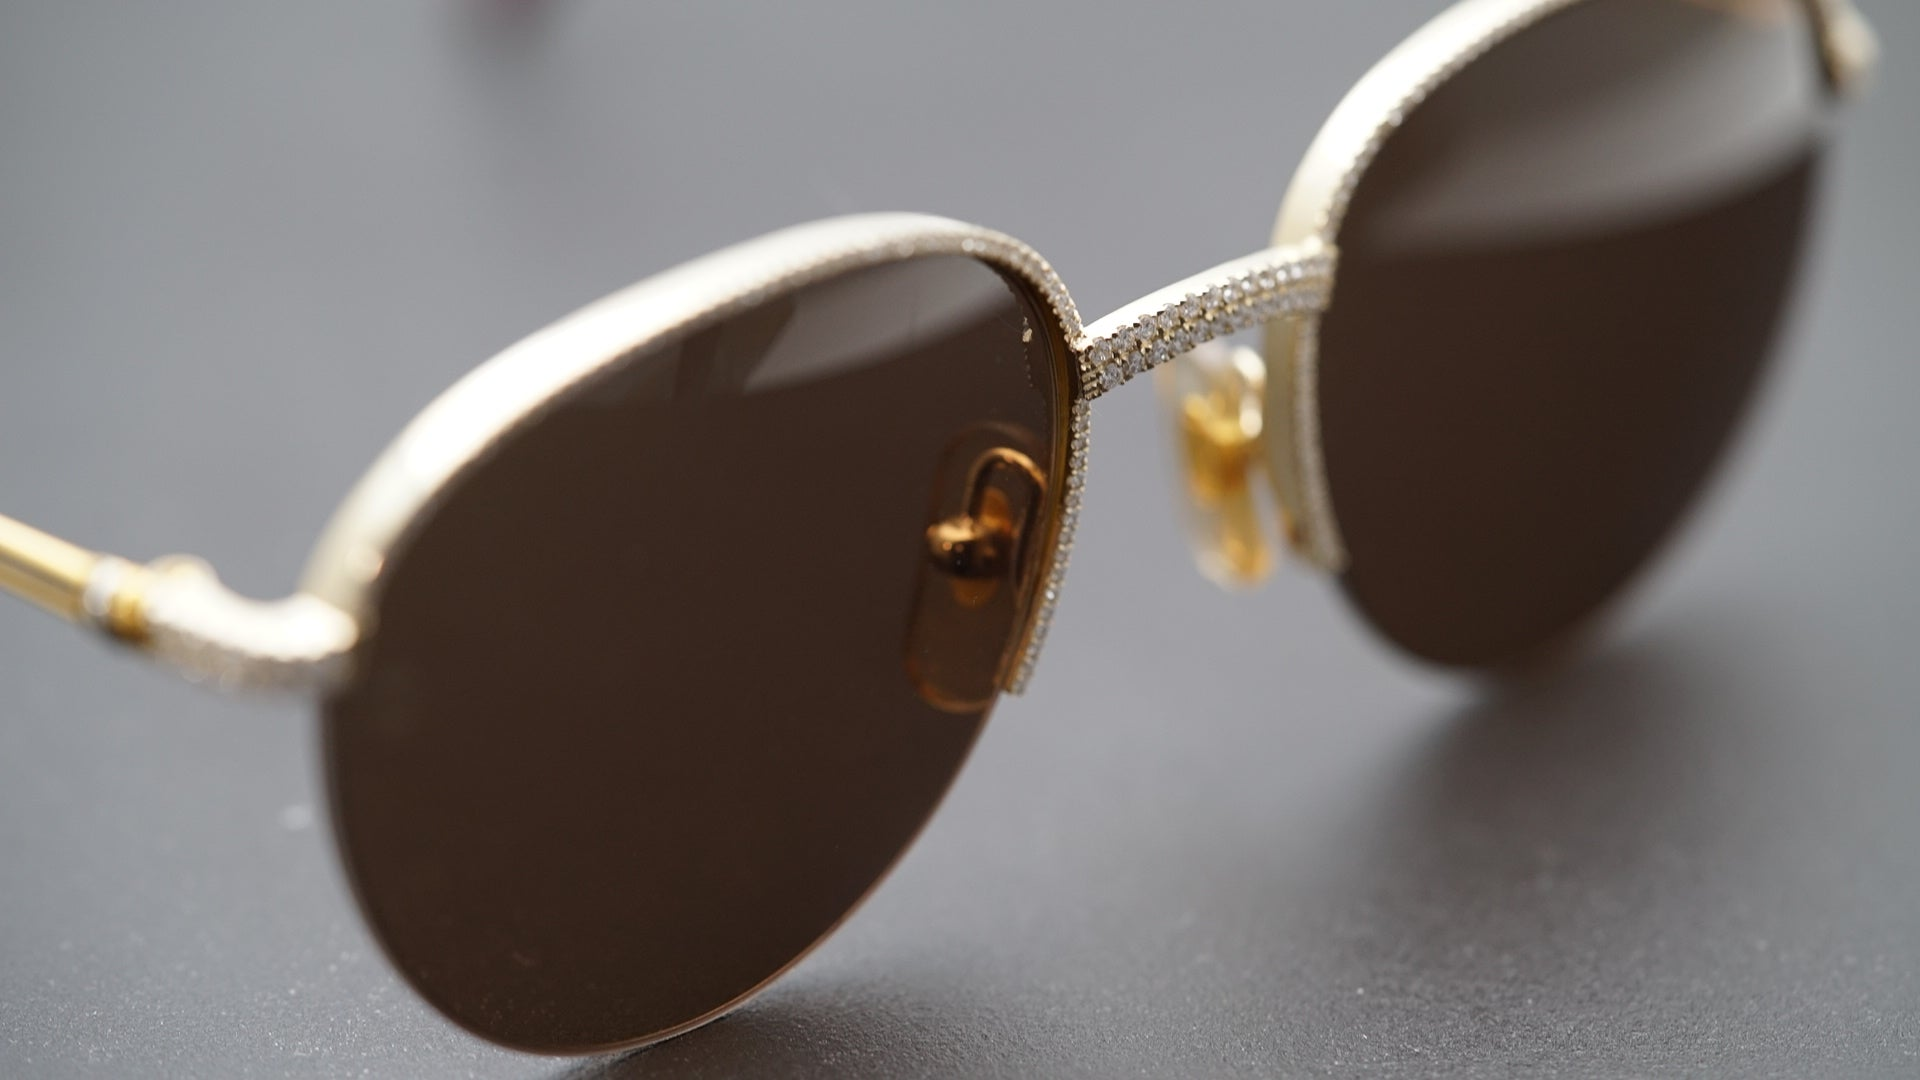 Premier De Cartier Sunglasses